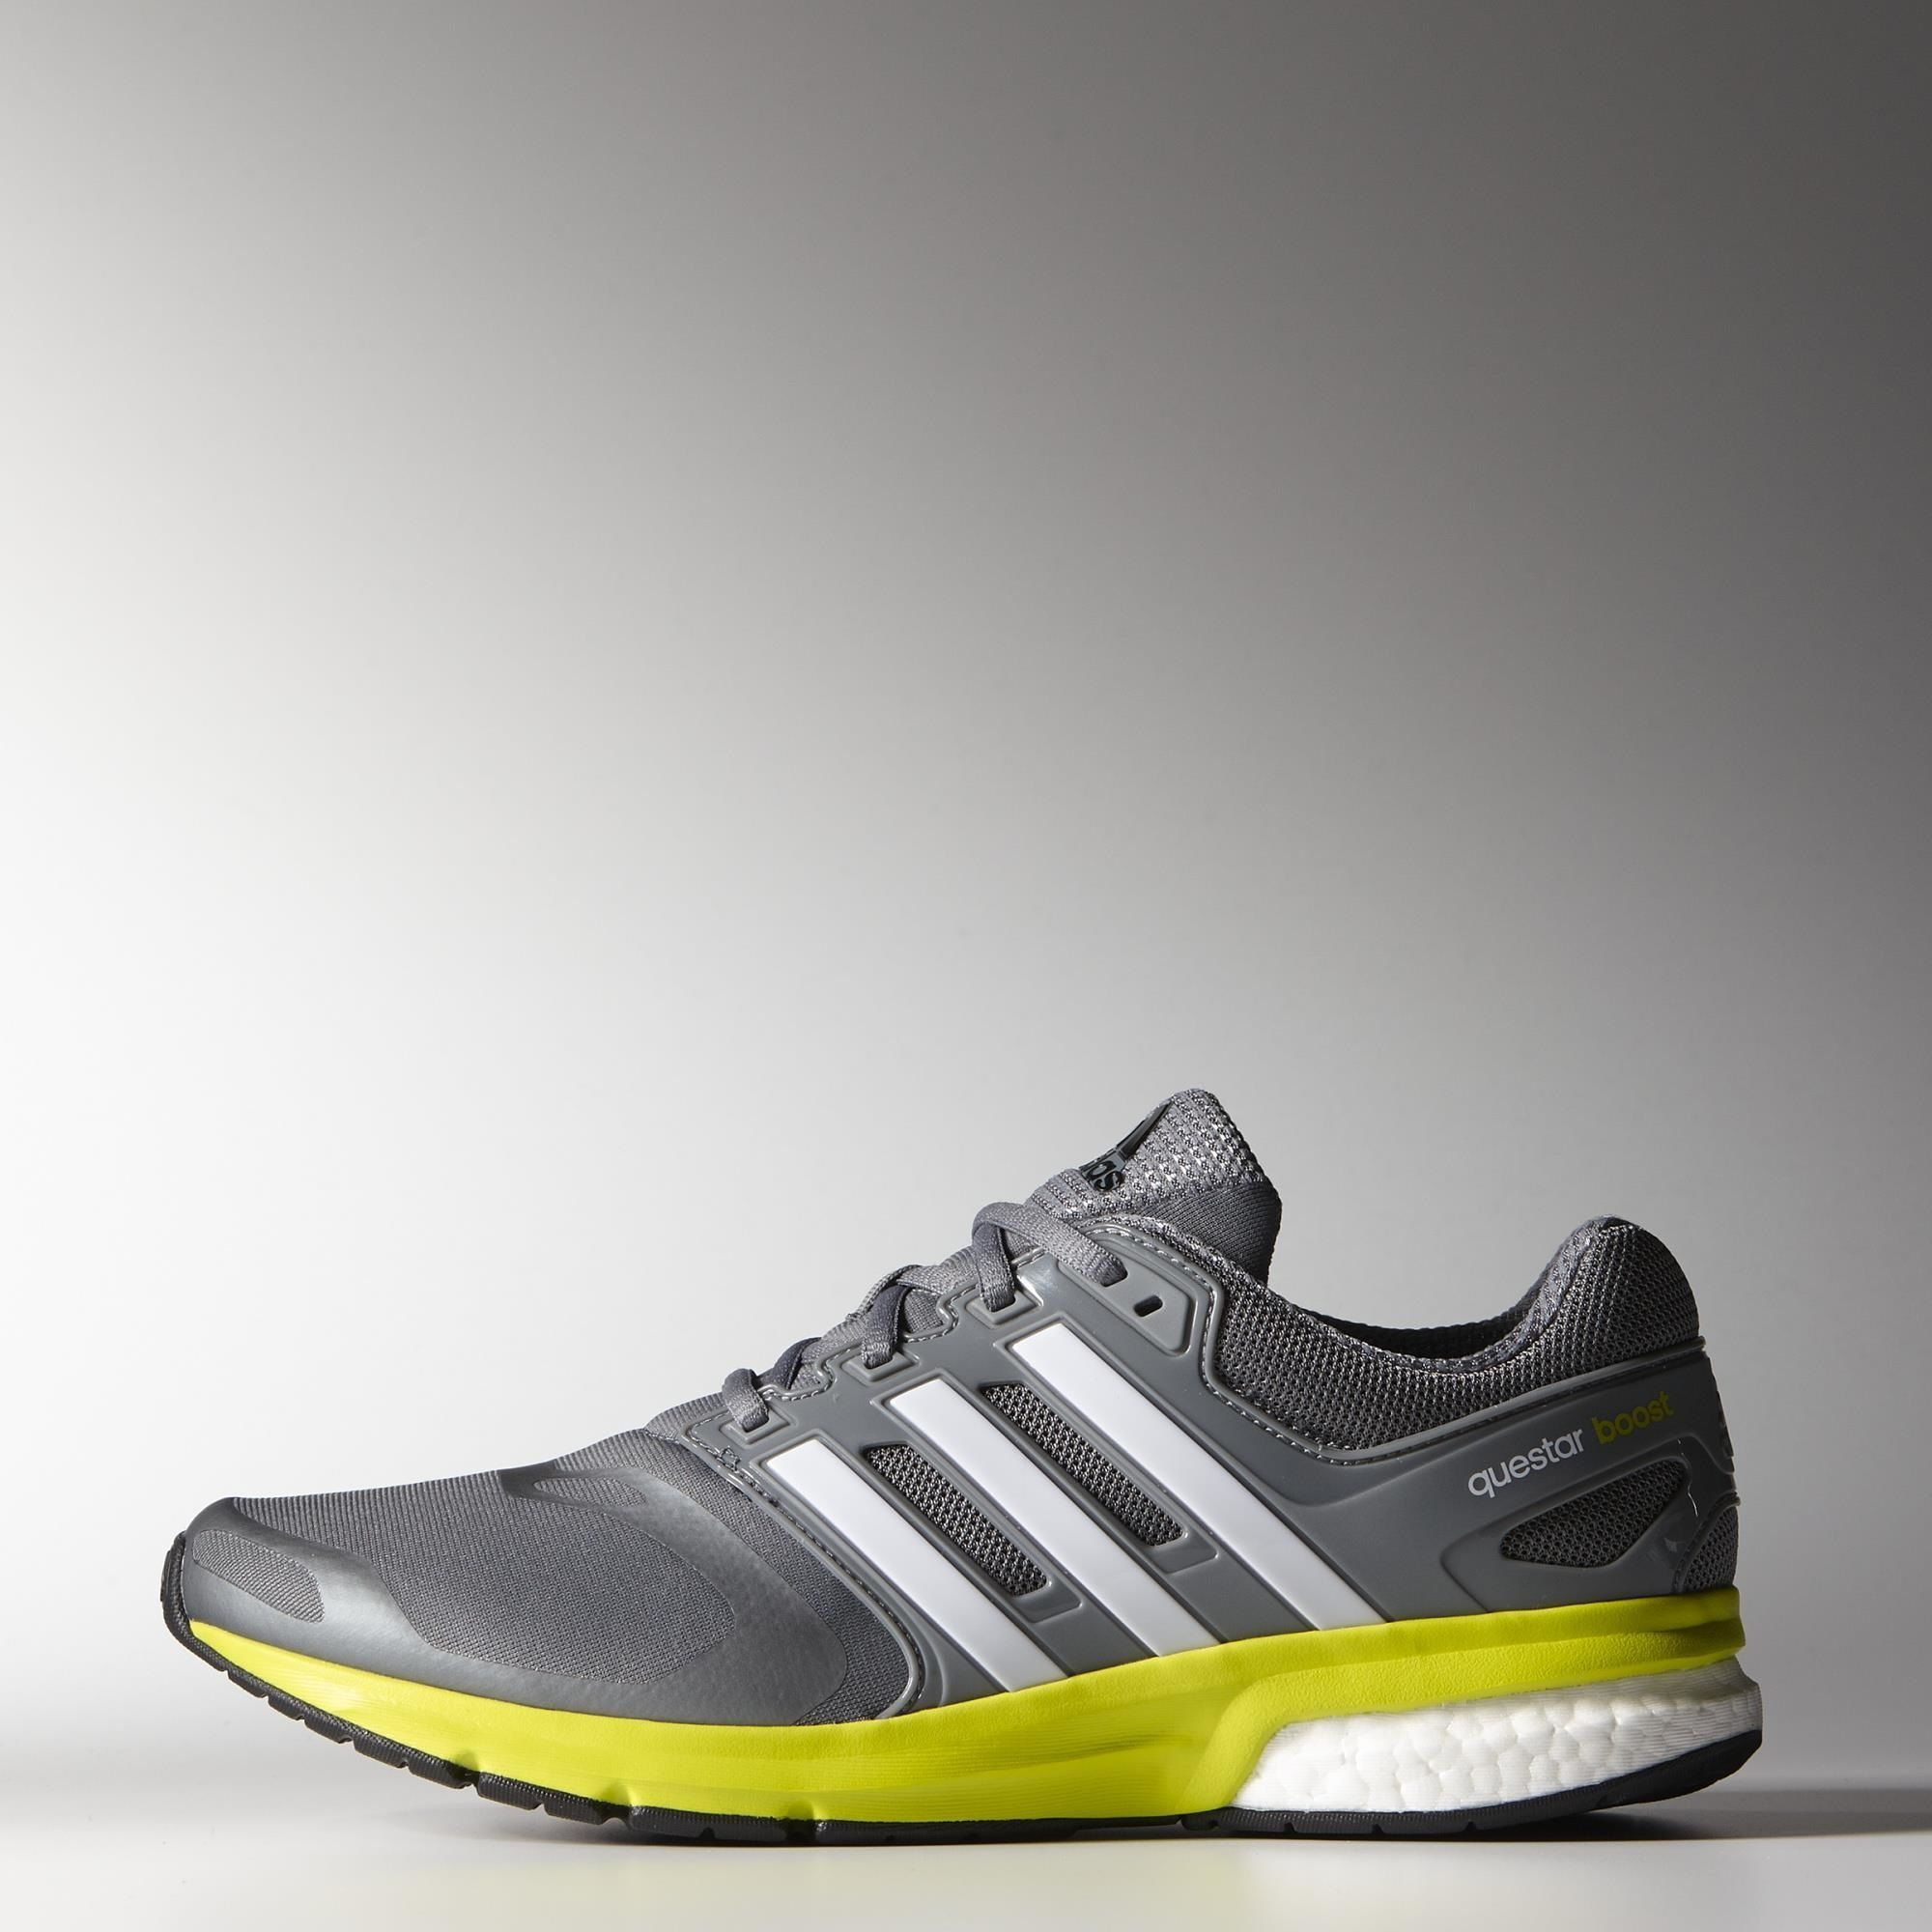 adidas Questar Boost Shoes | Boost shoes, Shoes, Adidas